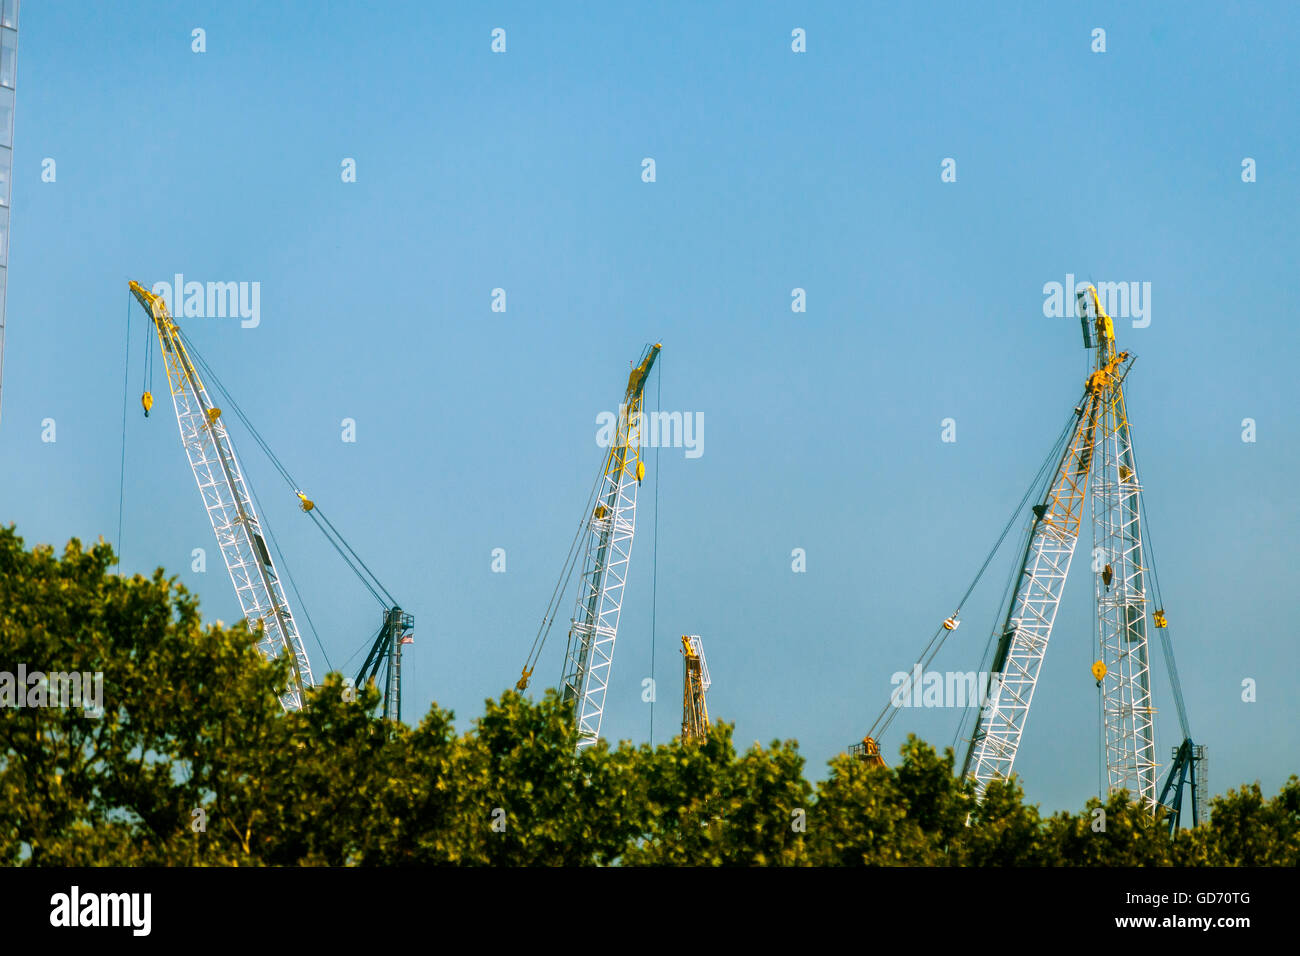 Cranes being used in the construction of the Hudson Yards project on the west side of New York on Fridya, July 8, - Stock Image